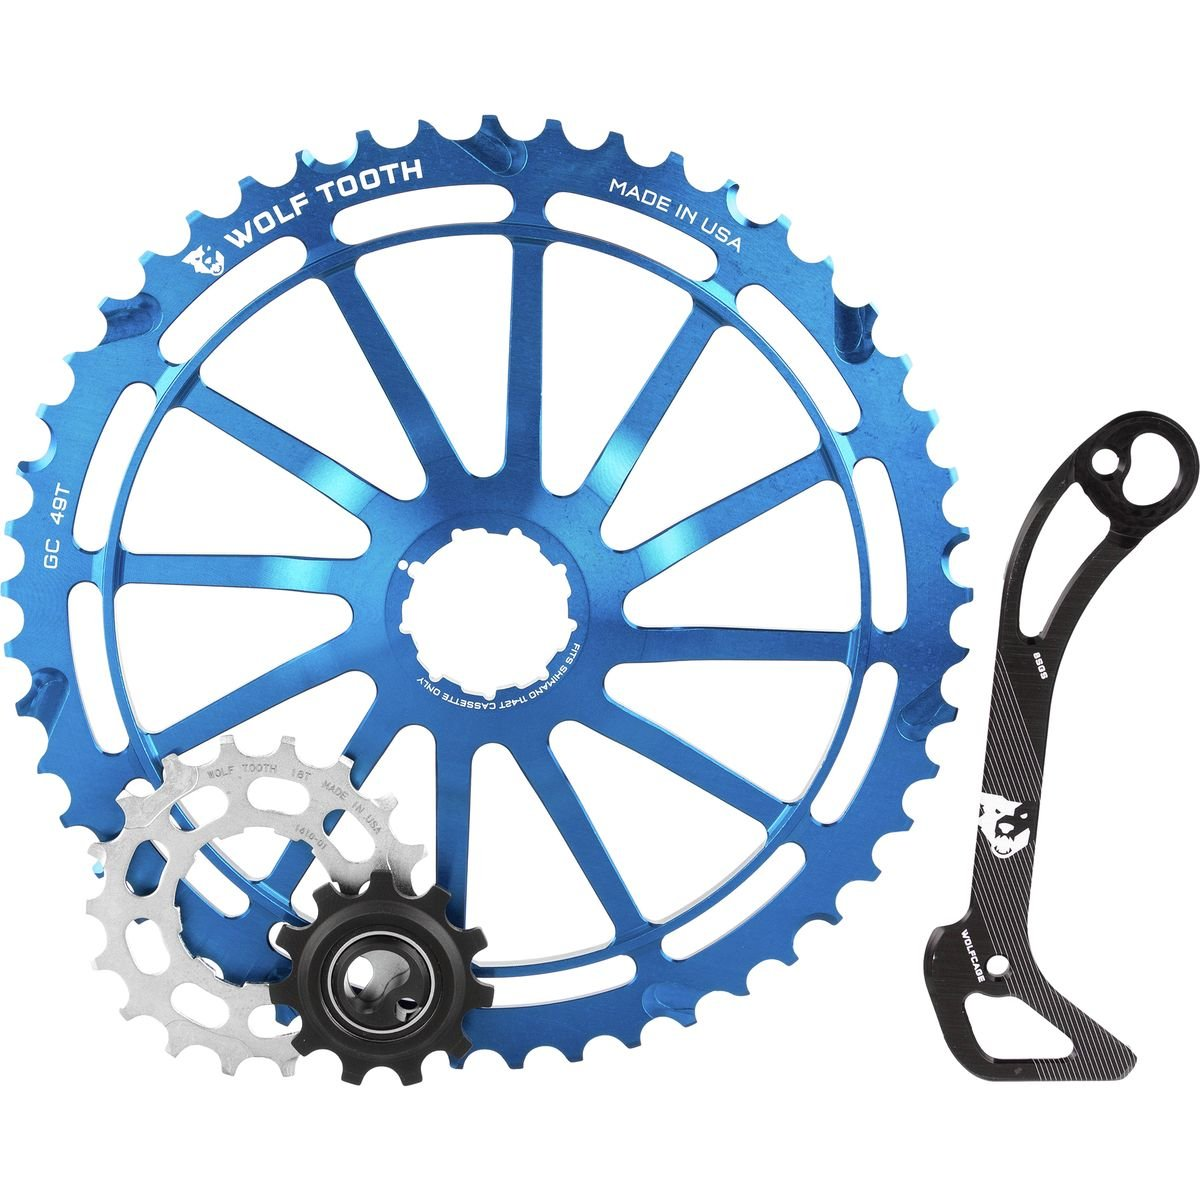 Wolf Tooth Components WolfCage Combo Pack: Includes 49T Cog, 18T Cog, and Derailleur Cage, Blue by Wolf Tooth Components (Image #1)